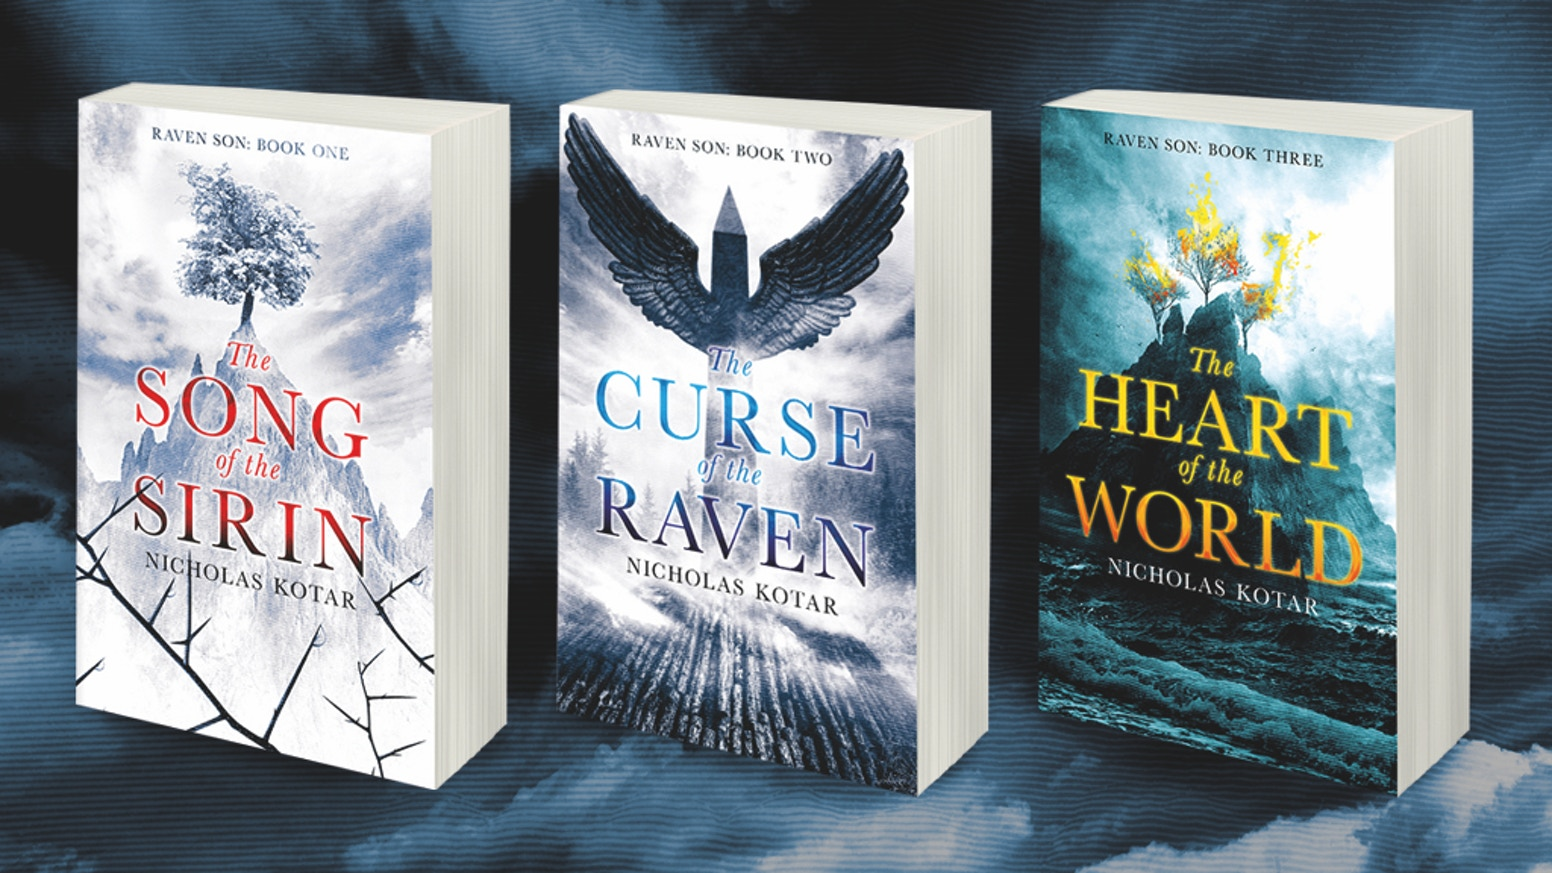 """The Lord of the Rings meets 1984."" Cinematic writing meets non-stop action in this 5 book series inspired by Slavic myths and legends"